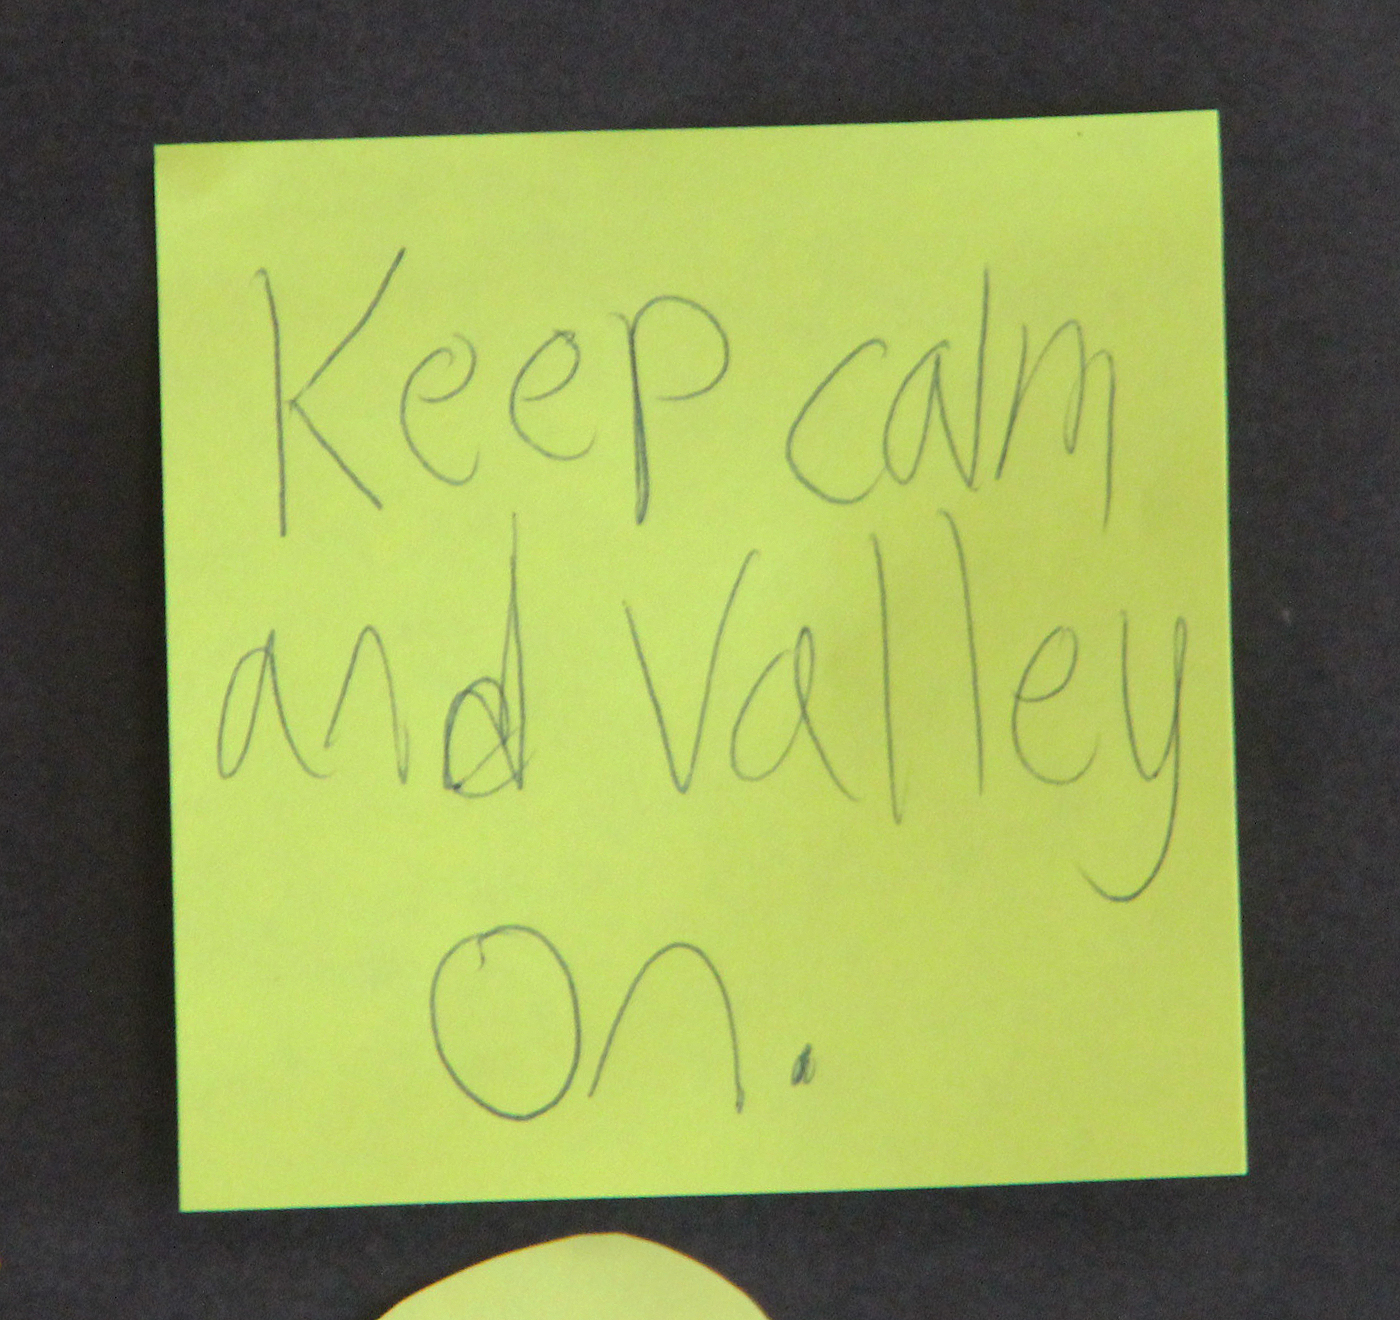 keep calm and valley on note